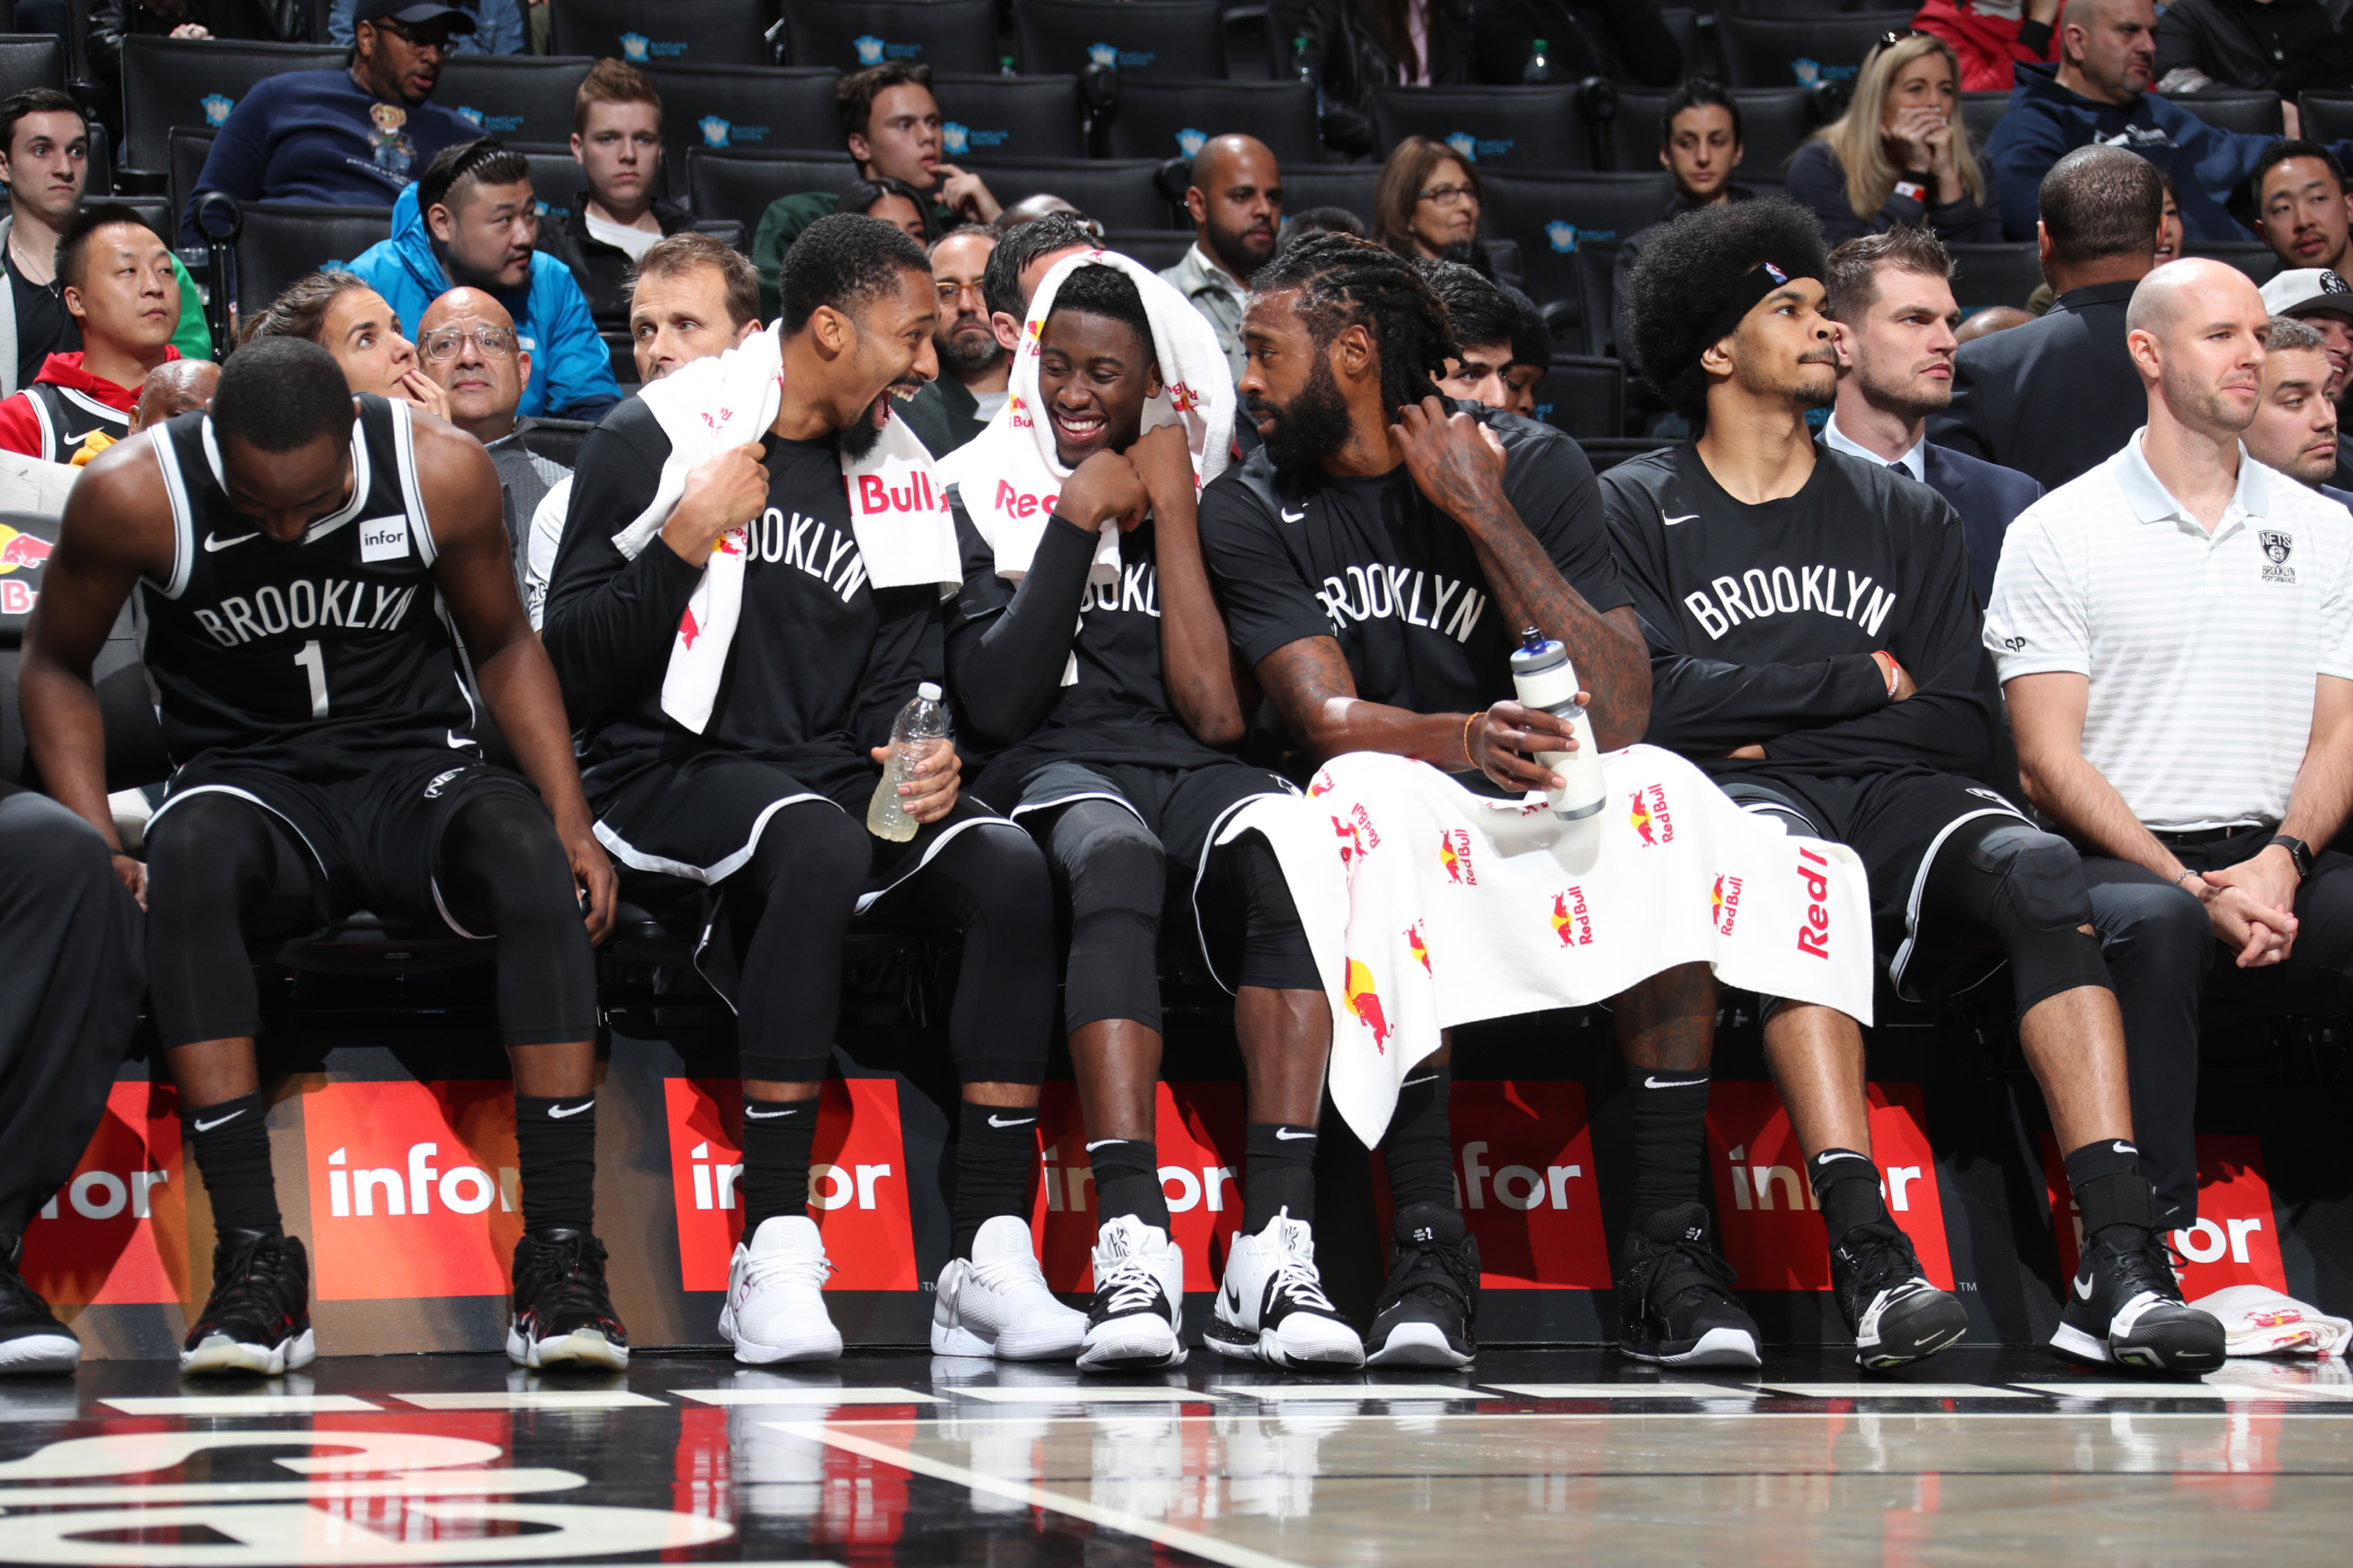 Brooklyn Nets: The Nets seemed to have found their identity